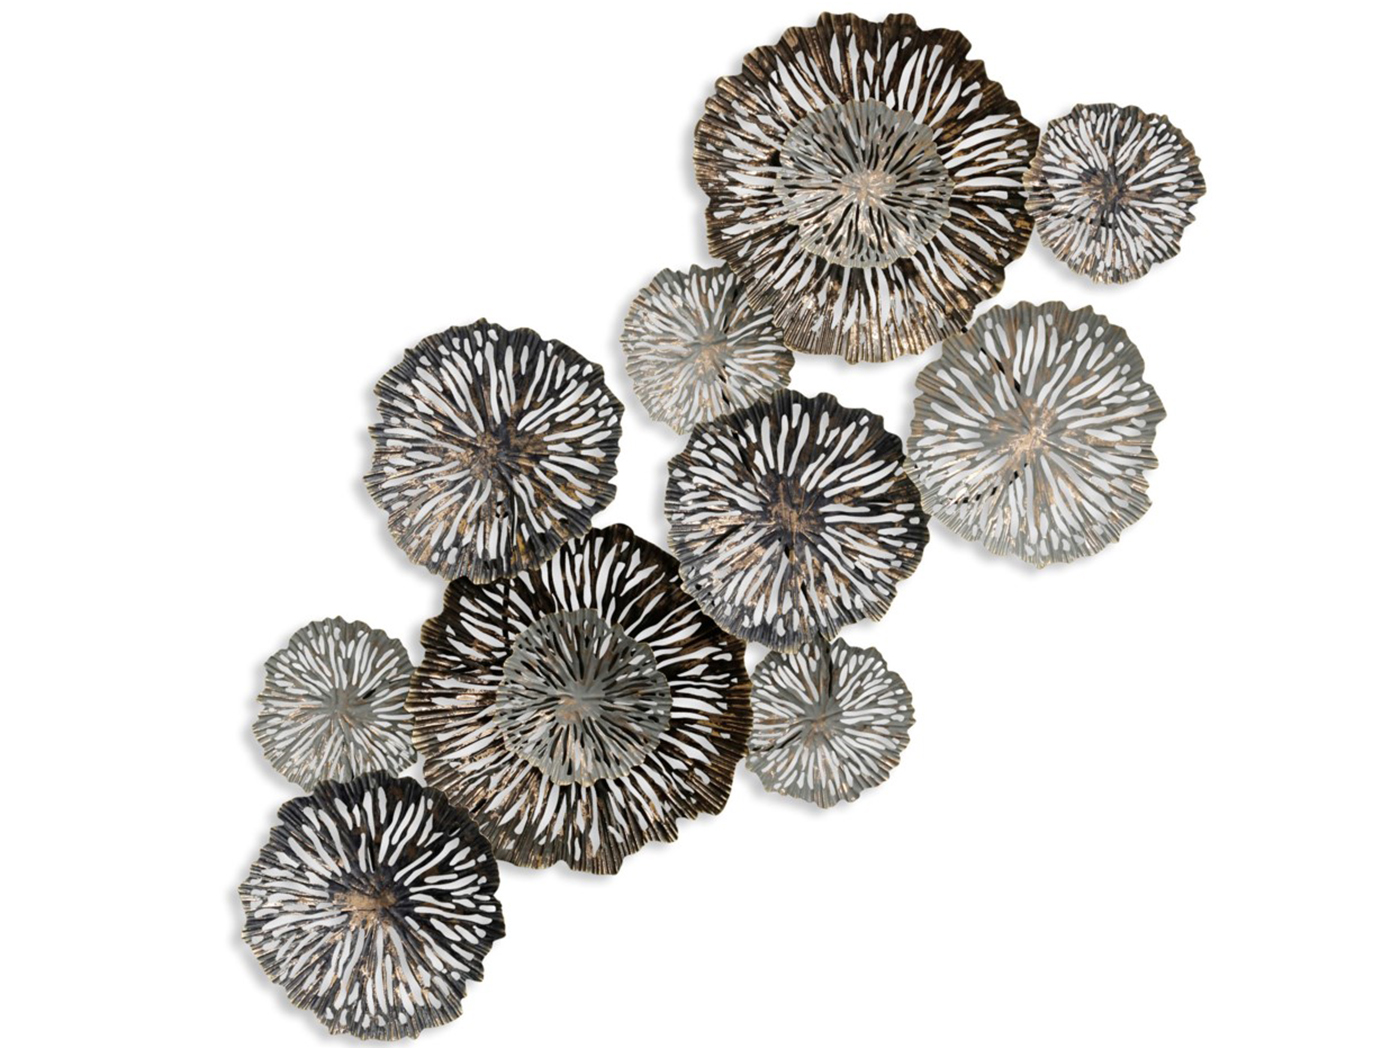 "Grey and Gold Metal Flower Wall Decor 28""W x 54""H"